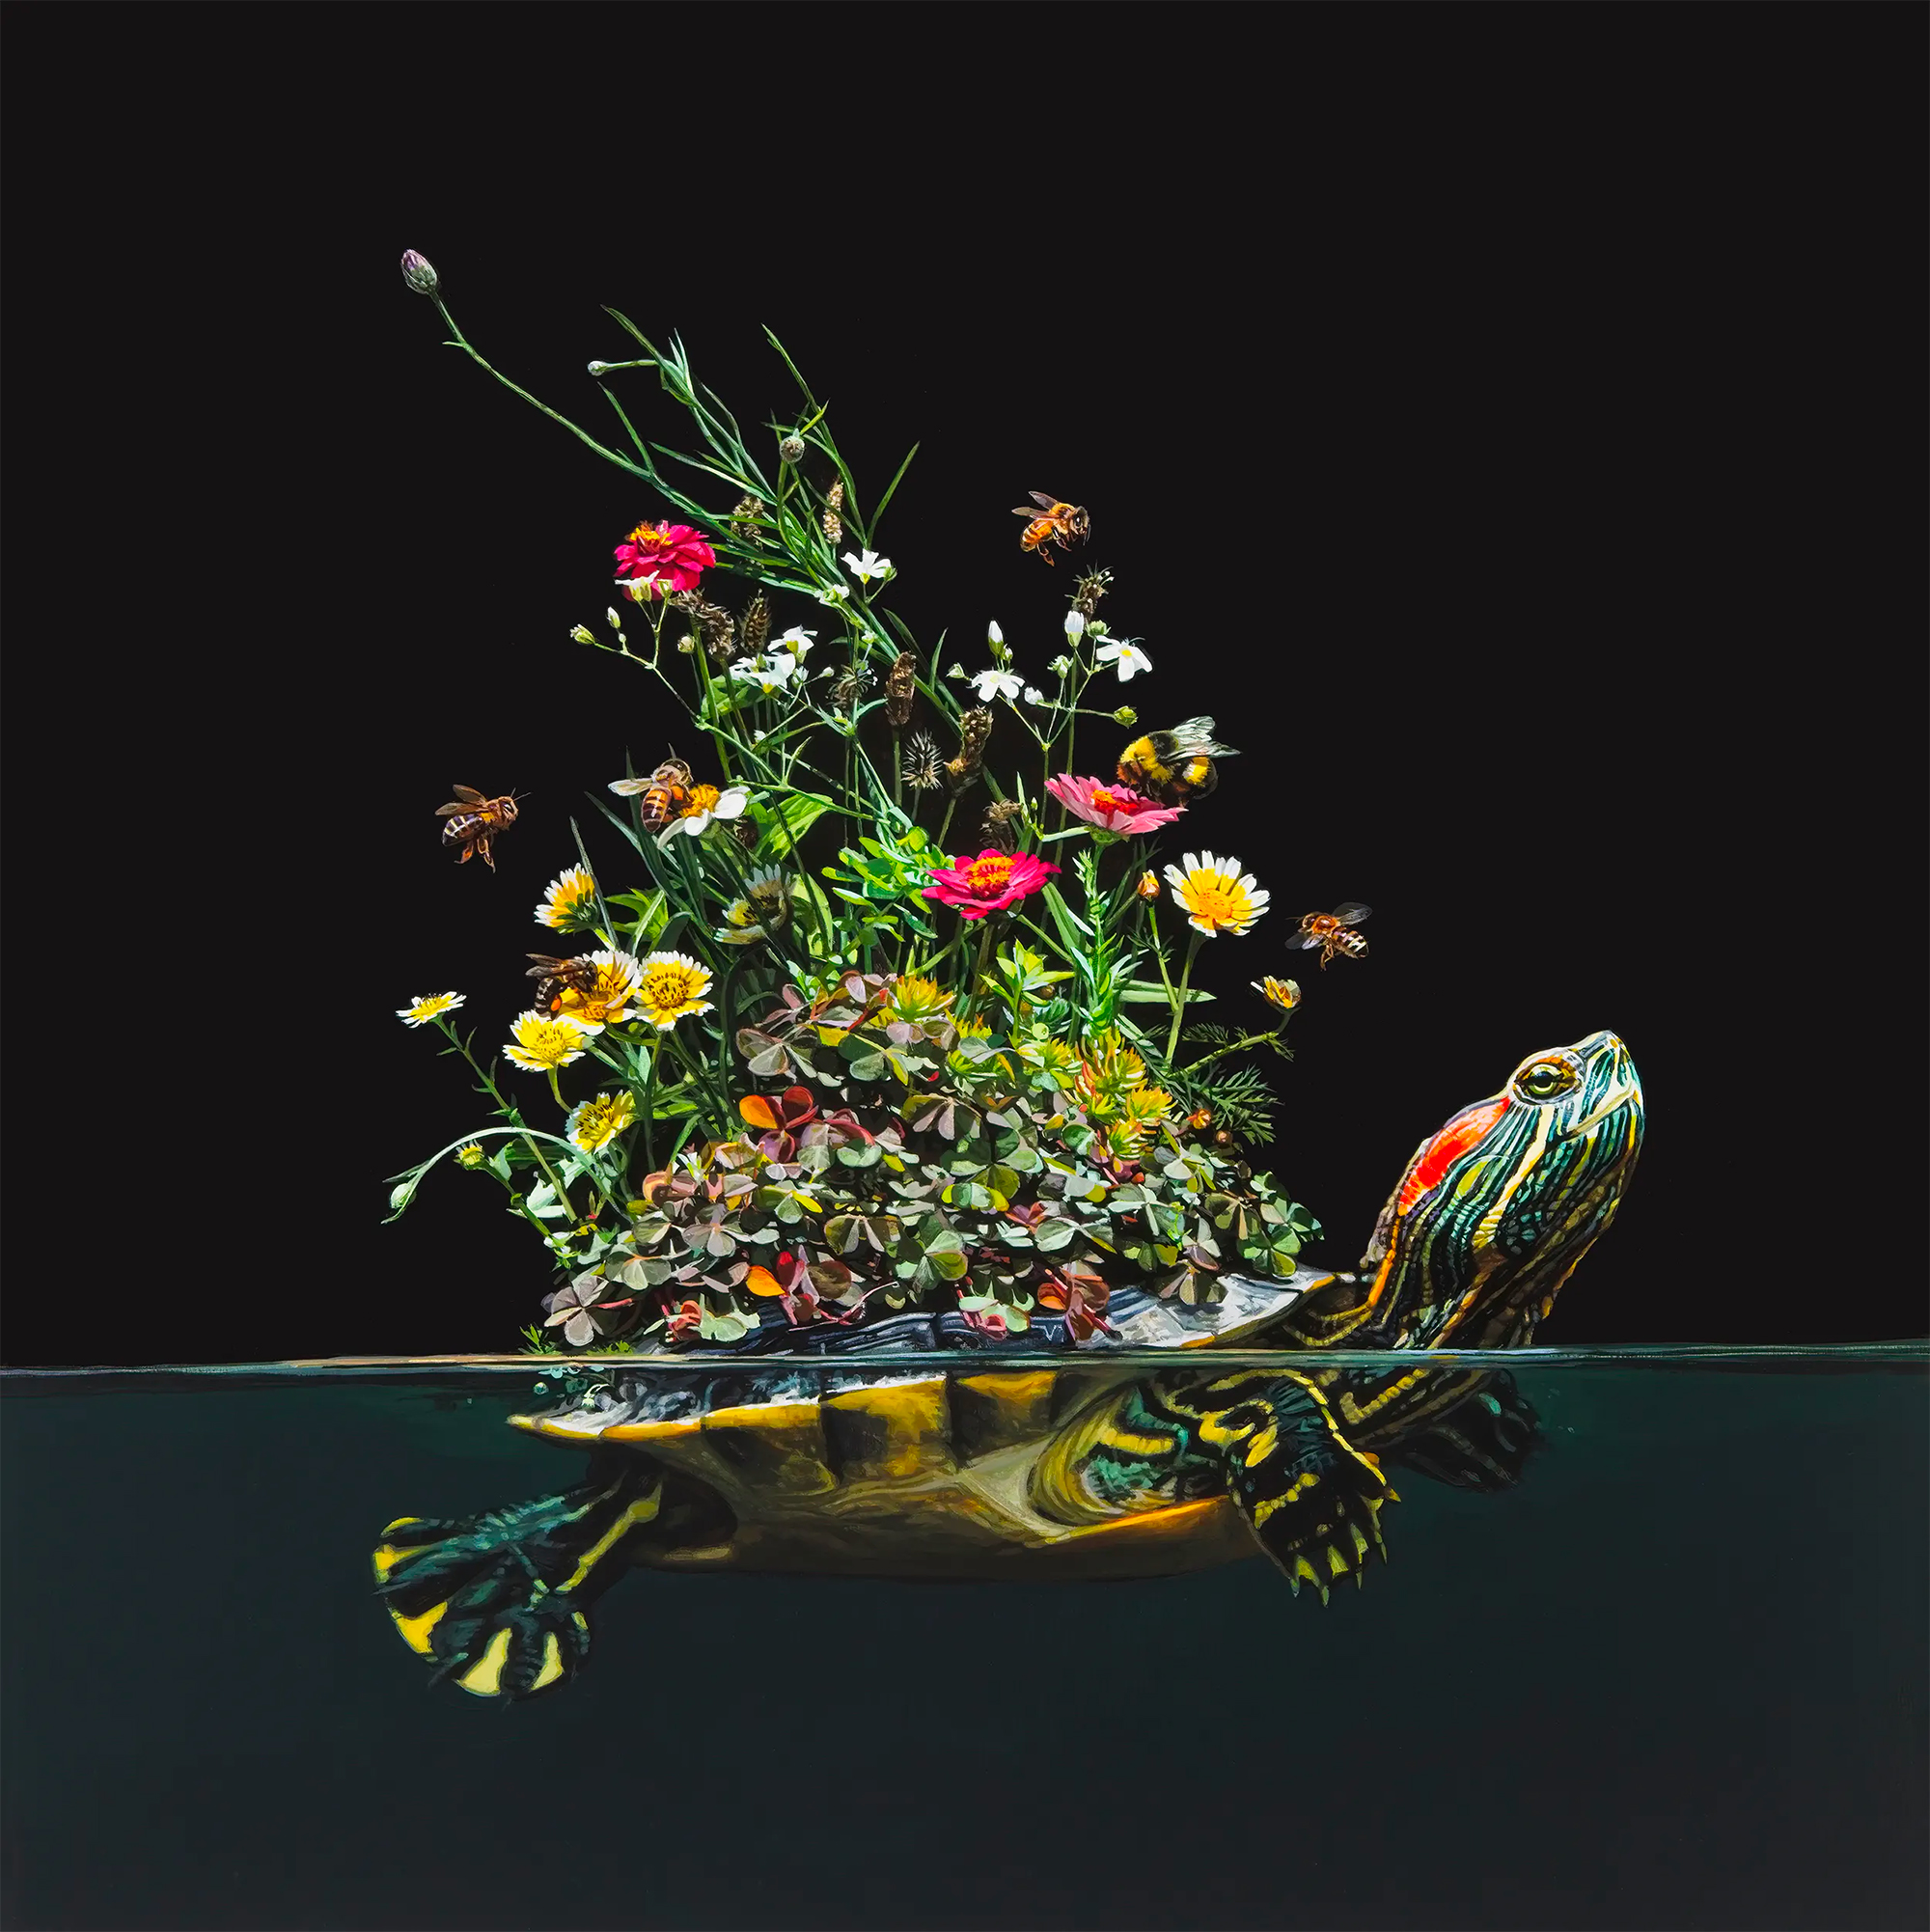 Animals Evolve into Islands Teeming With Coral, Succulents, and Tropical Fish in Hyperrealist Paintings by Lisa Ericson